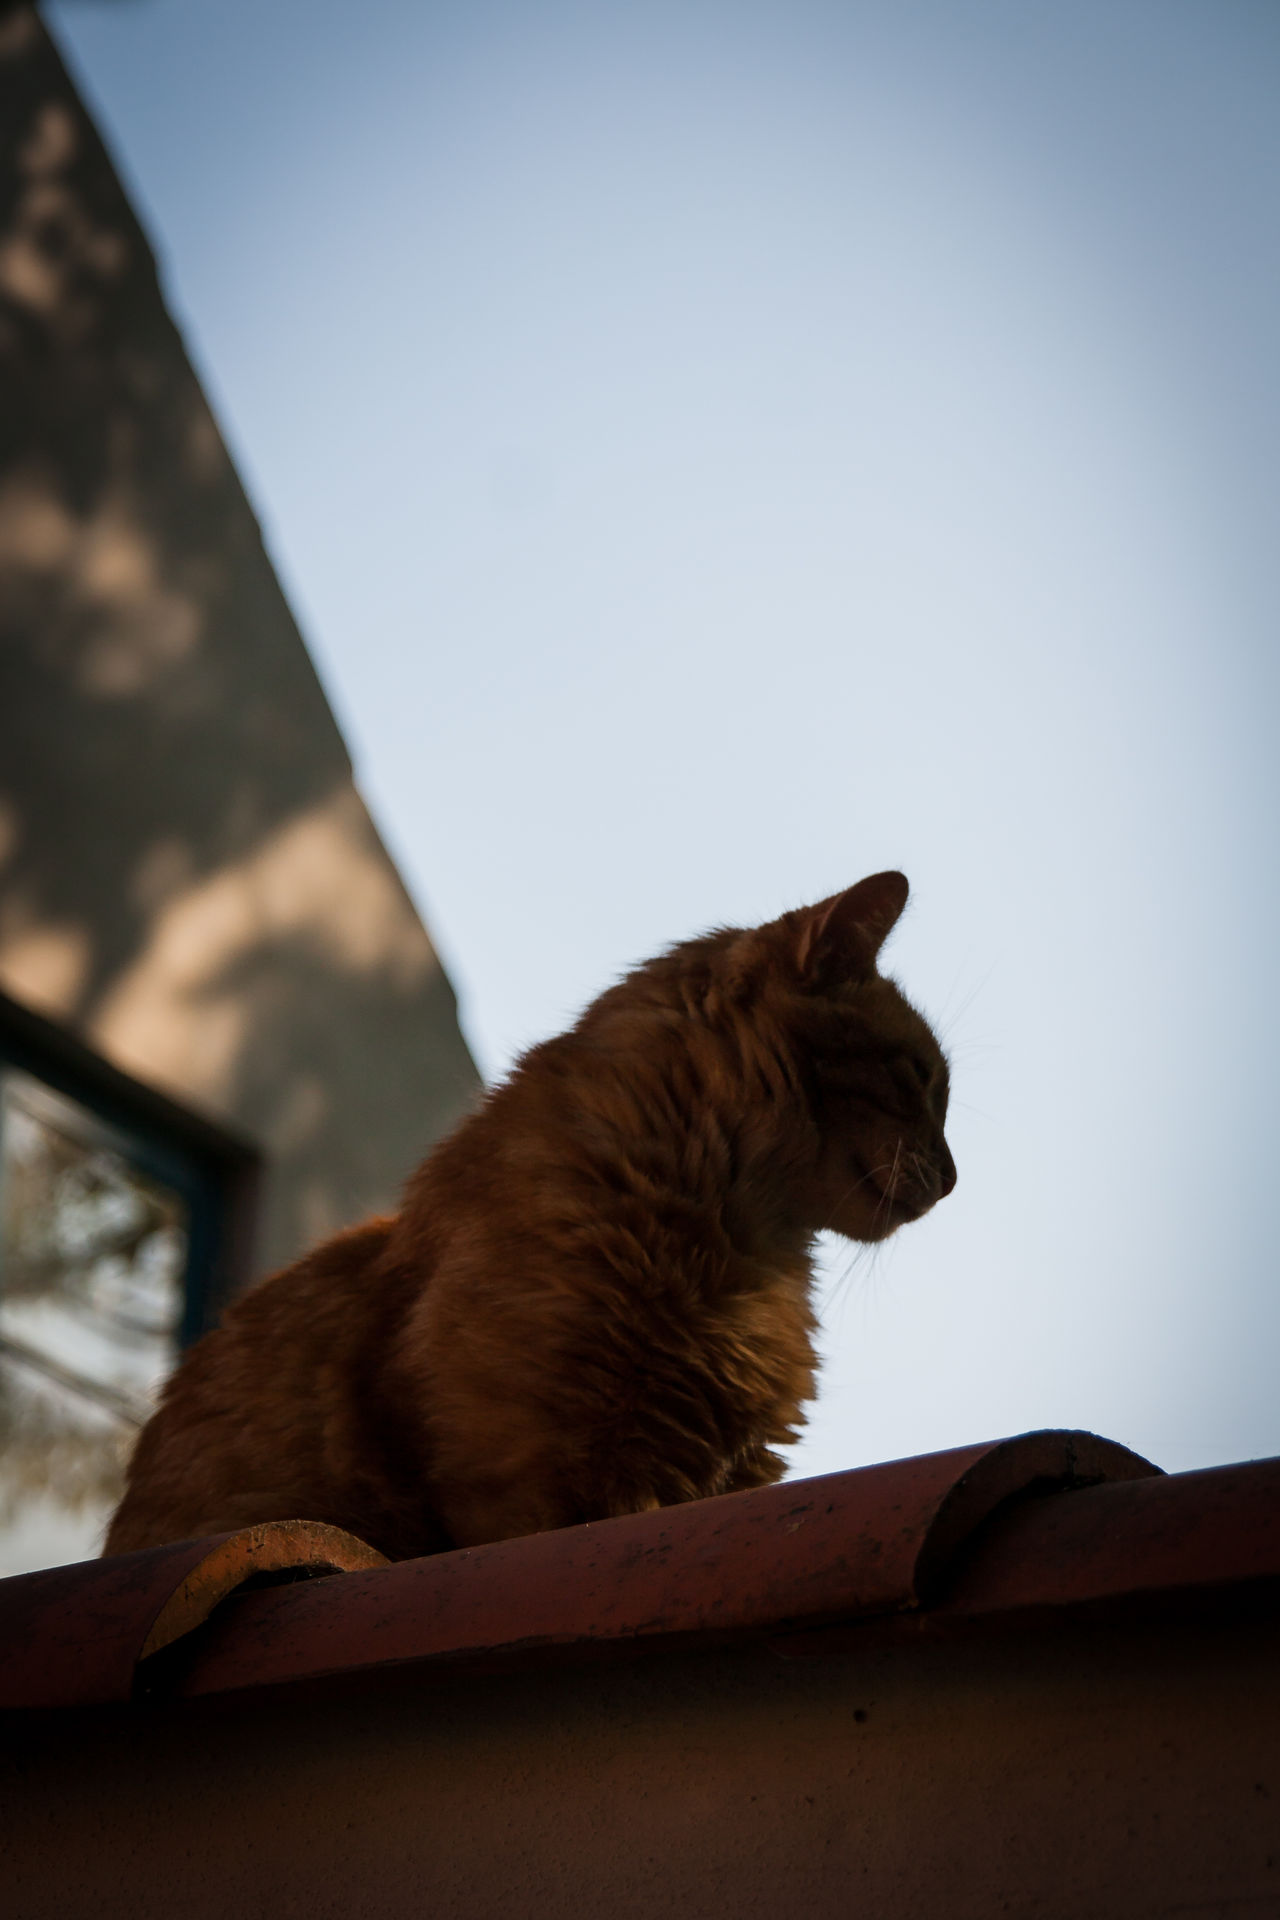 Animal Themes Close-up Day Domestic Animals Domestic Cat Feline Mammal No People One Animal Pets Silhouette Sitting Sky